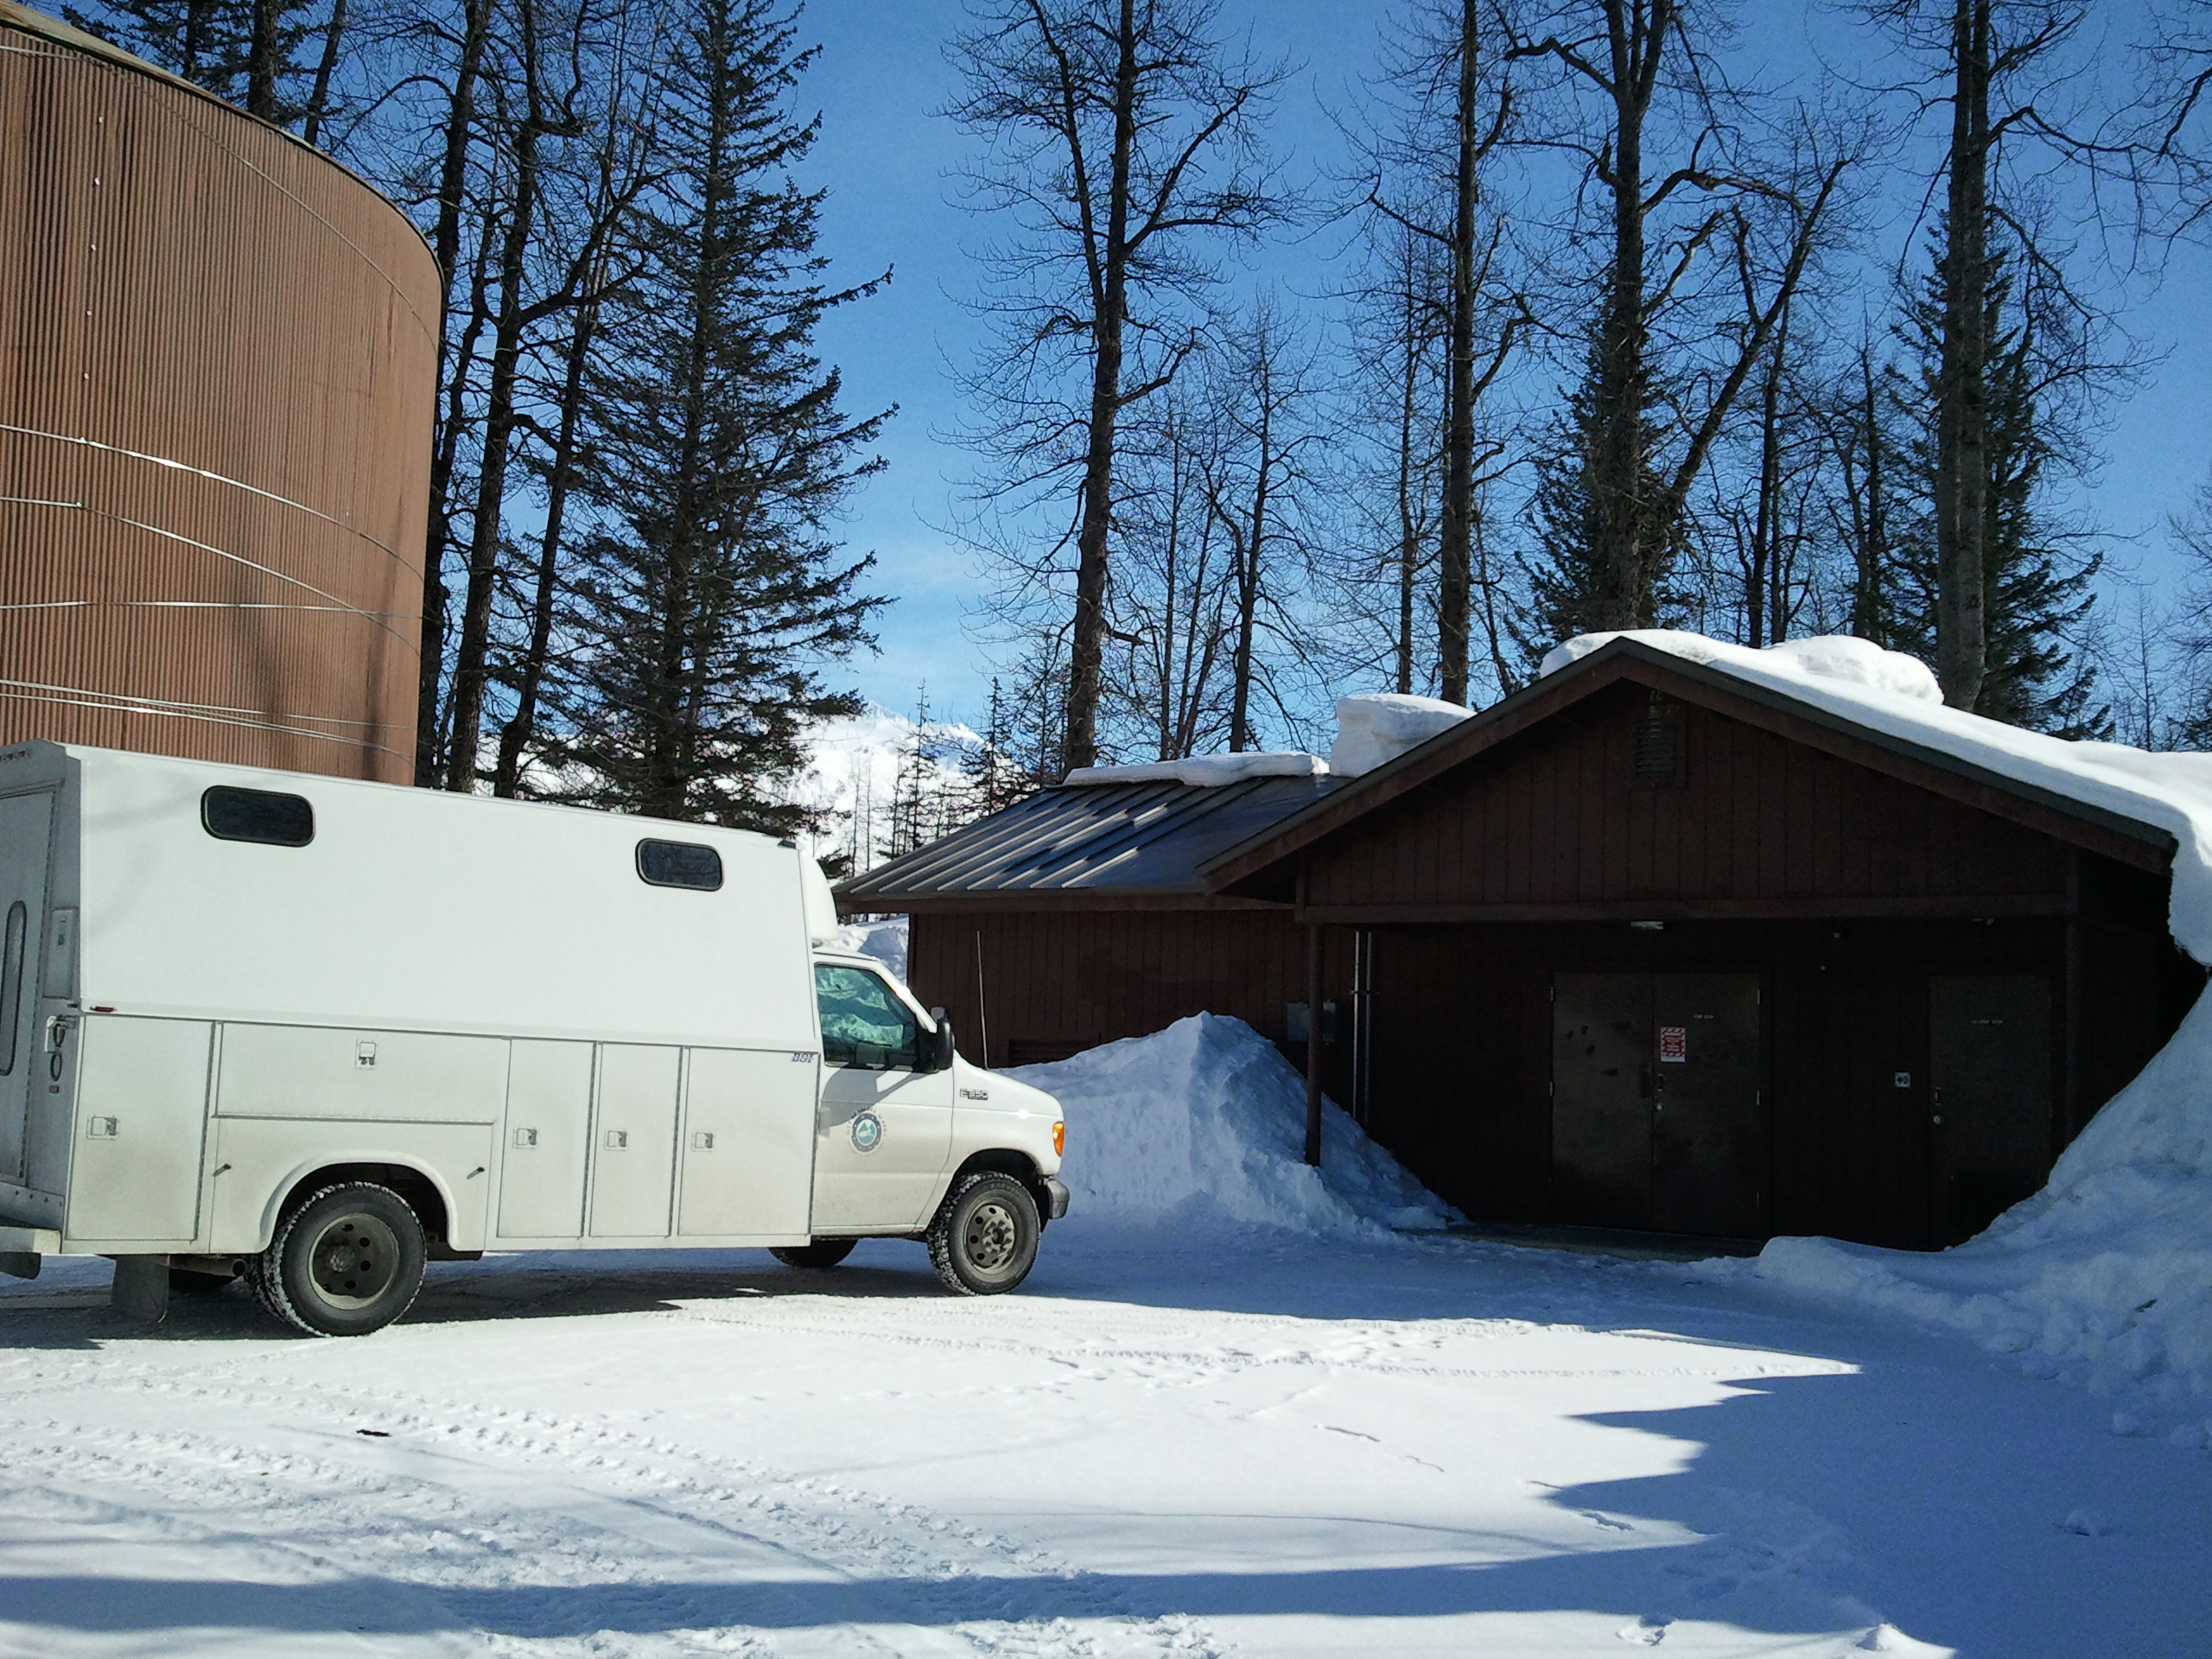 photo of a white van parked in front of a brown building. Winter time